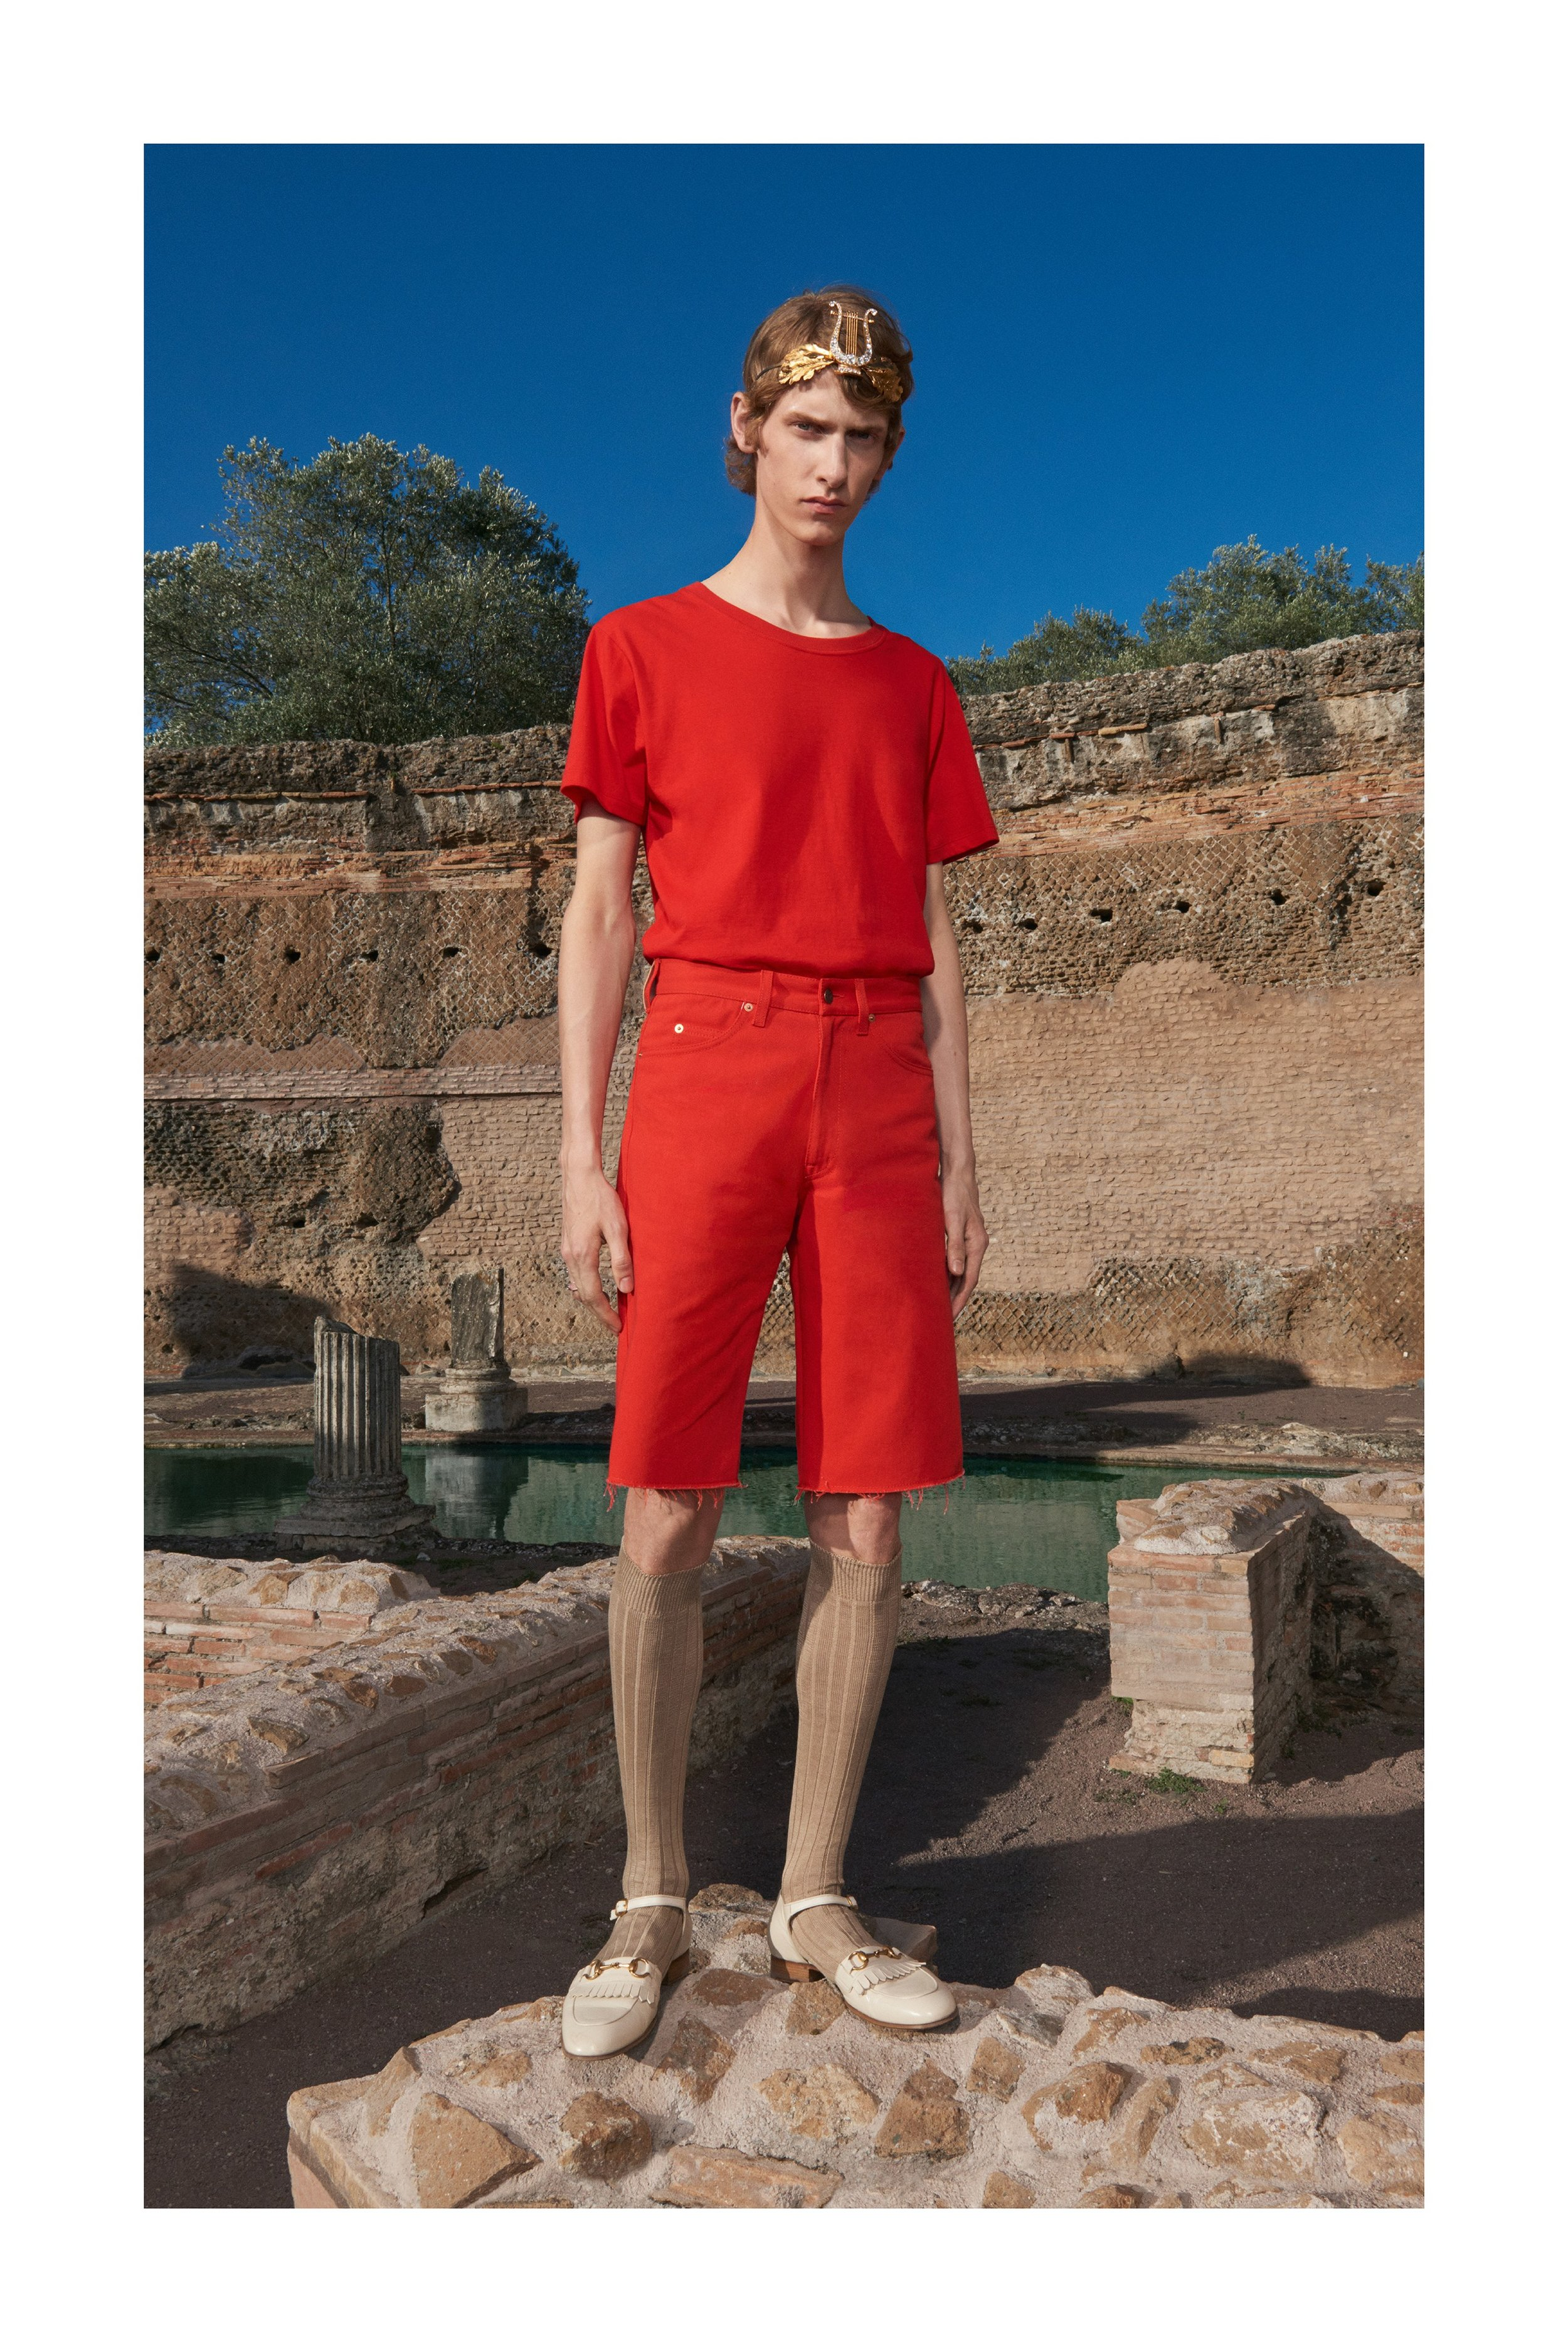 """Collections like this are supposed to make you  feel  something. I can't see a man on the street wearing those loafers/sandals/platforms, but they made me look a few times - that's fashion's job. But when I look at this monochromatic orange look, the only vibes I get are """"Its my first day of 3rd grade"""" vibes."""